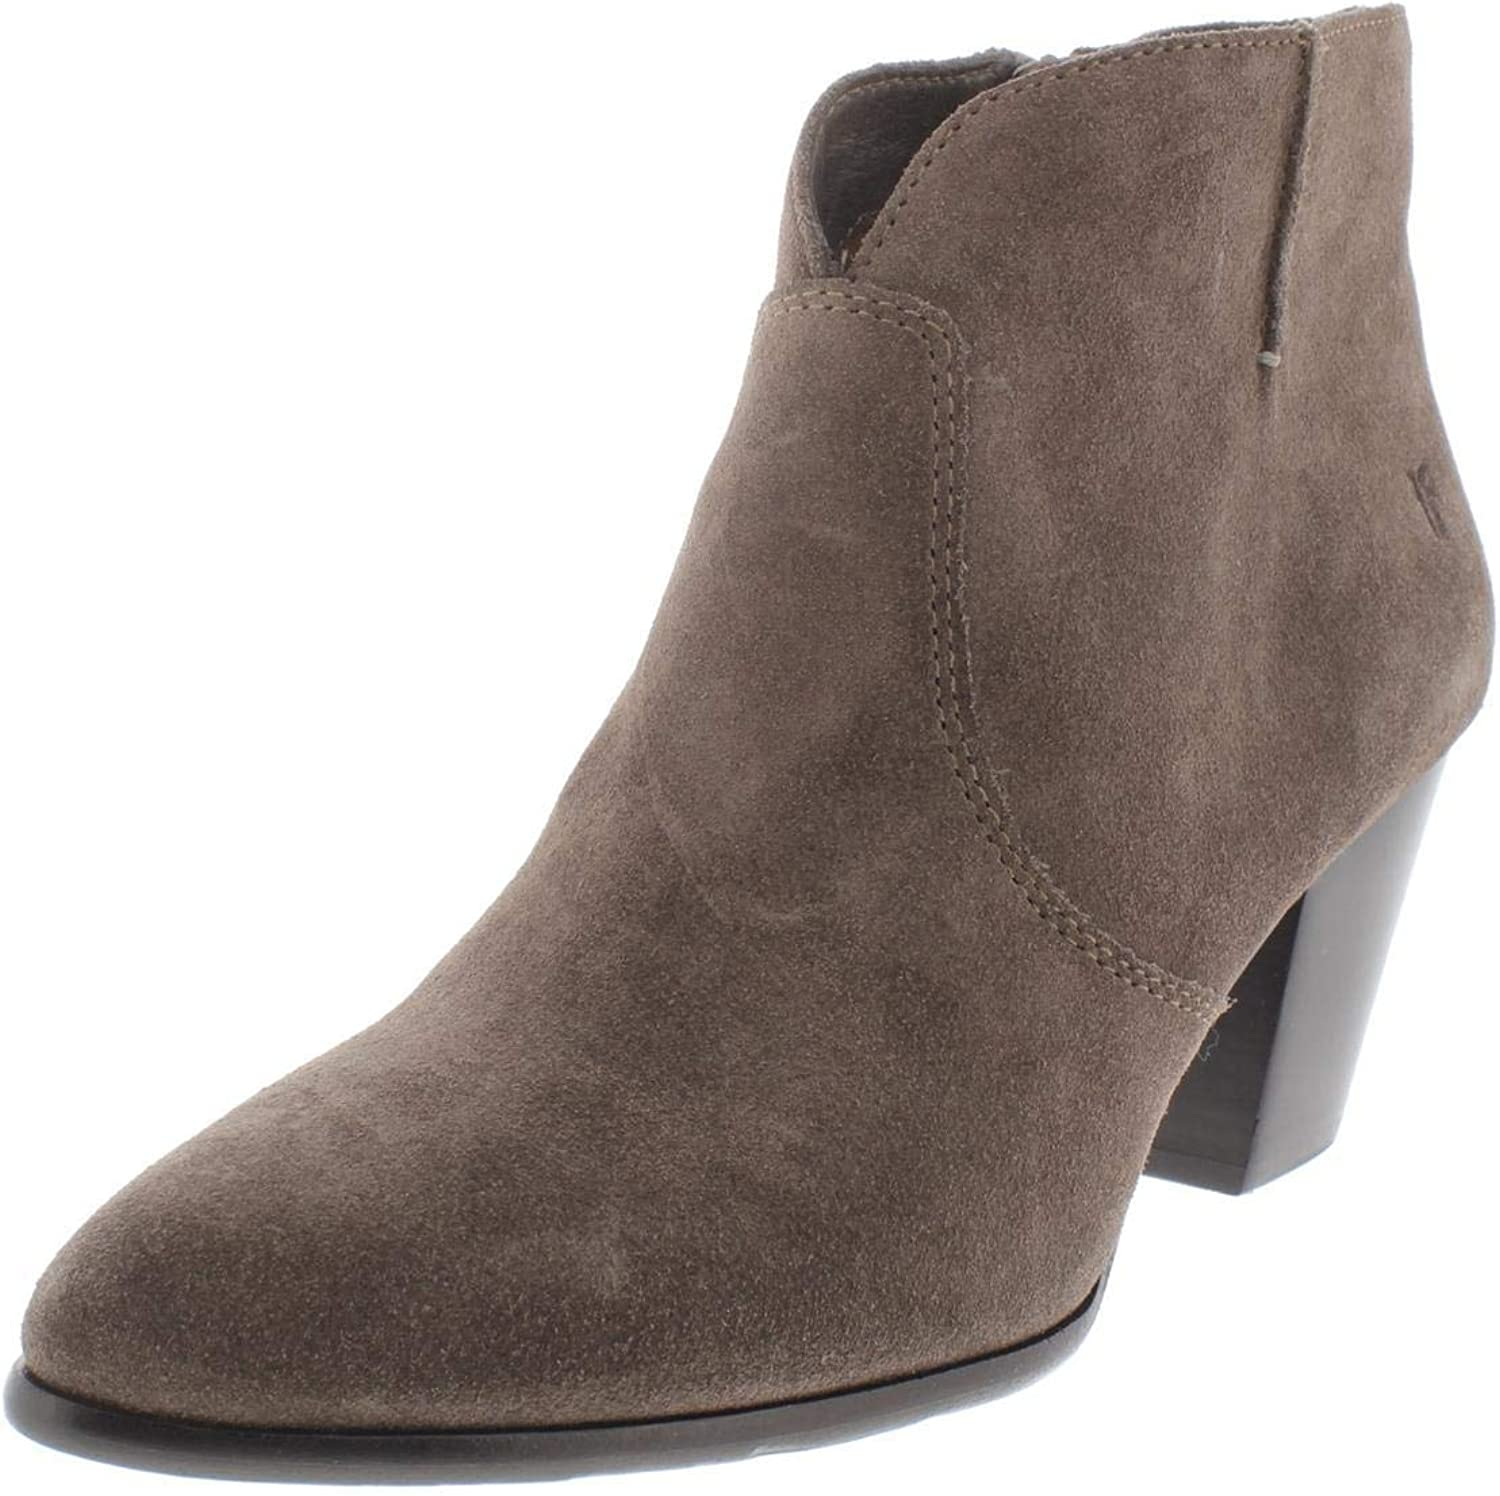 Frye Womens Jennifer Suede Heels Booties